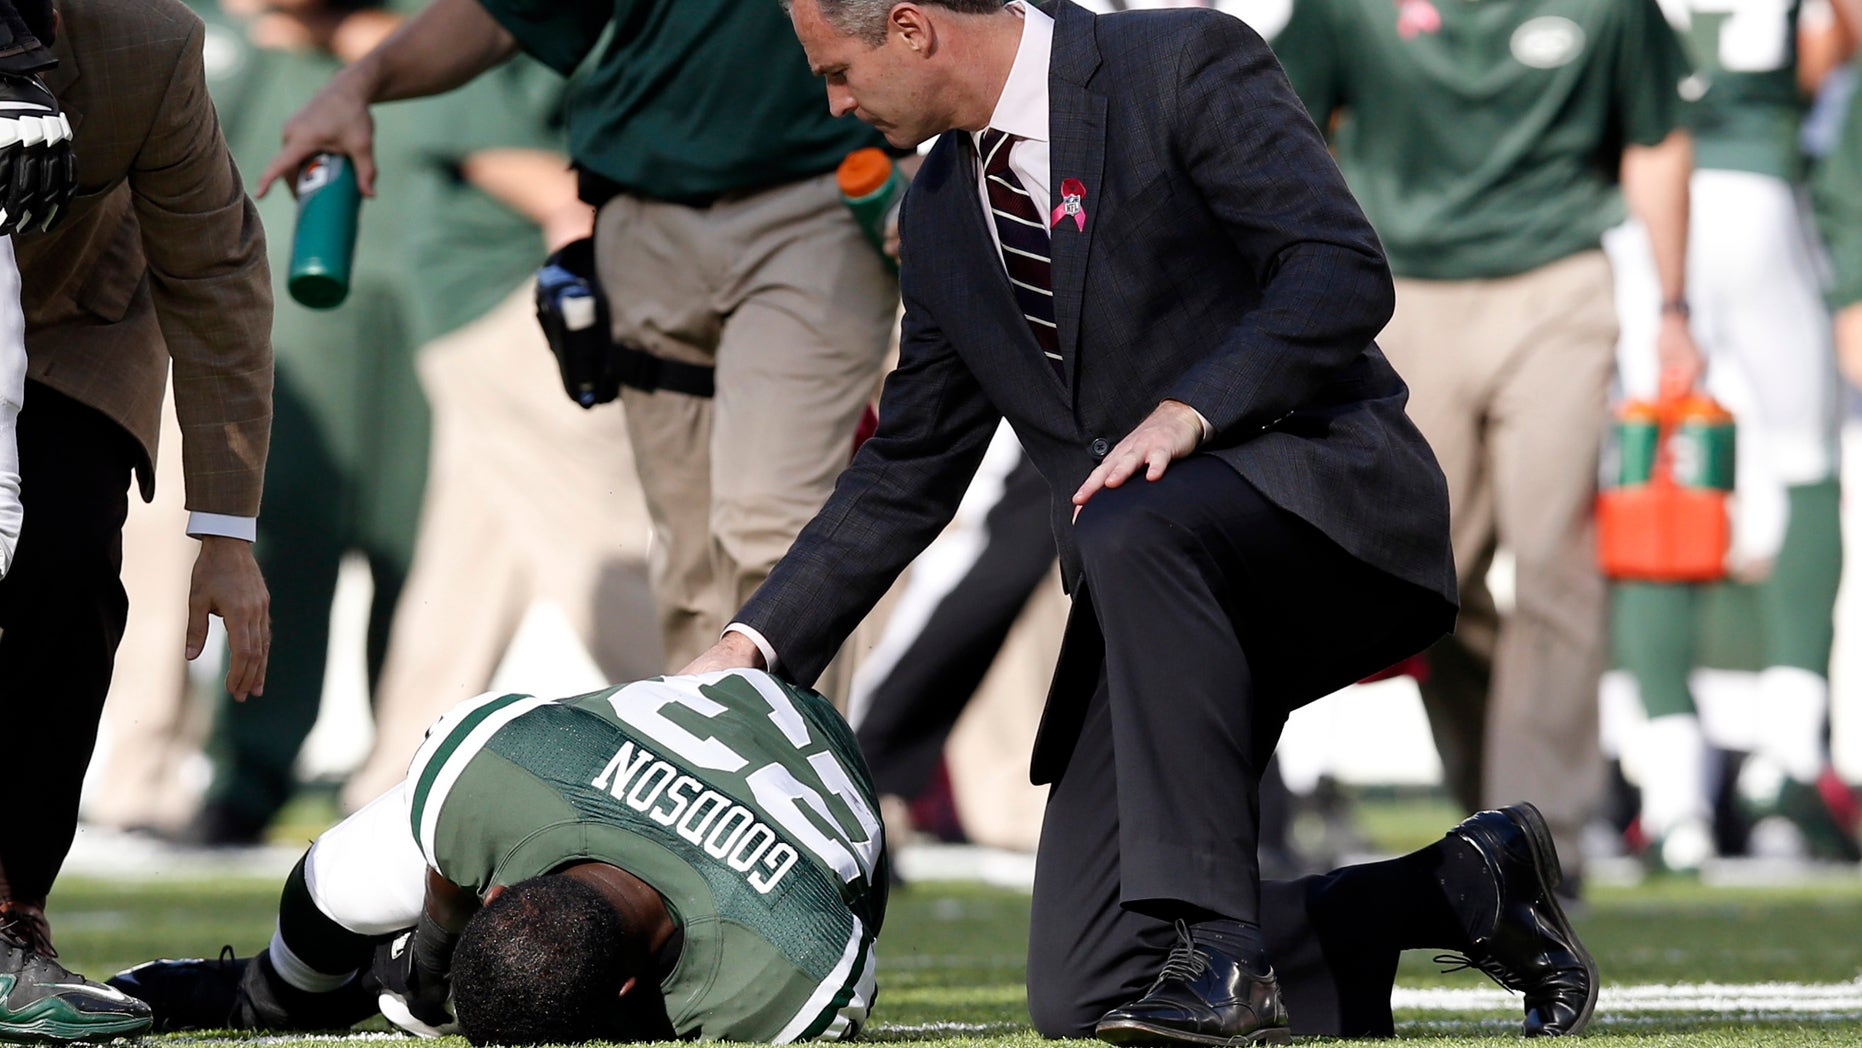 New York Jets' Mike Goodson (23) is tended to after being injured on a play during the second half of an NFL football game against the Pittsburgh Steelers, Sunday, Oct. 13, 2013, in East Rutherford, N.J. The Steelers won 19-6. (AP Photo/Kathy Willens)